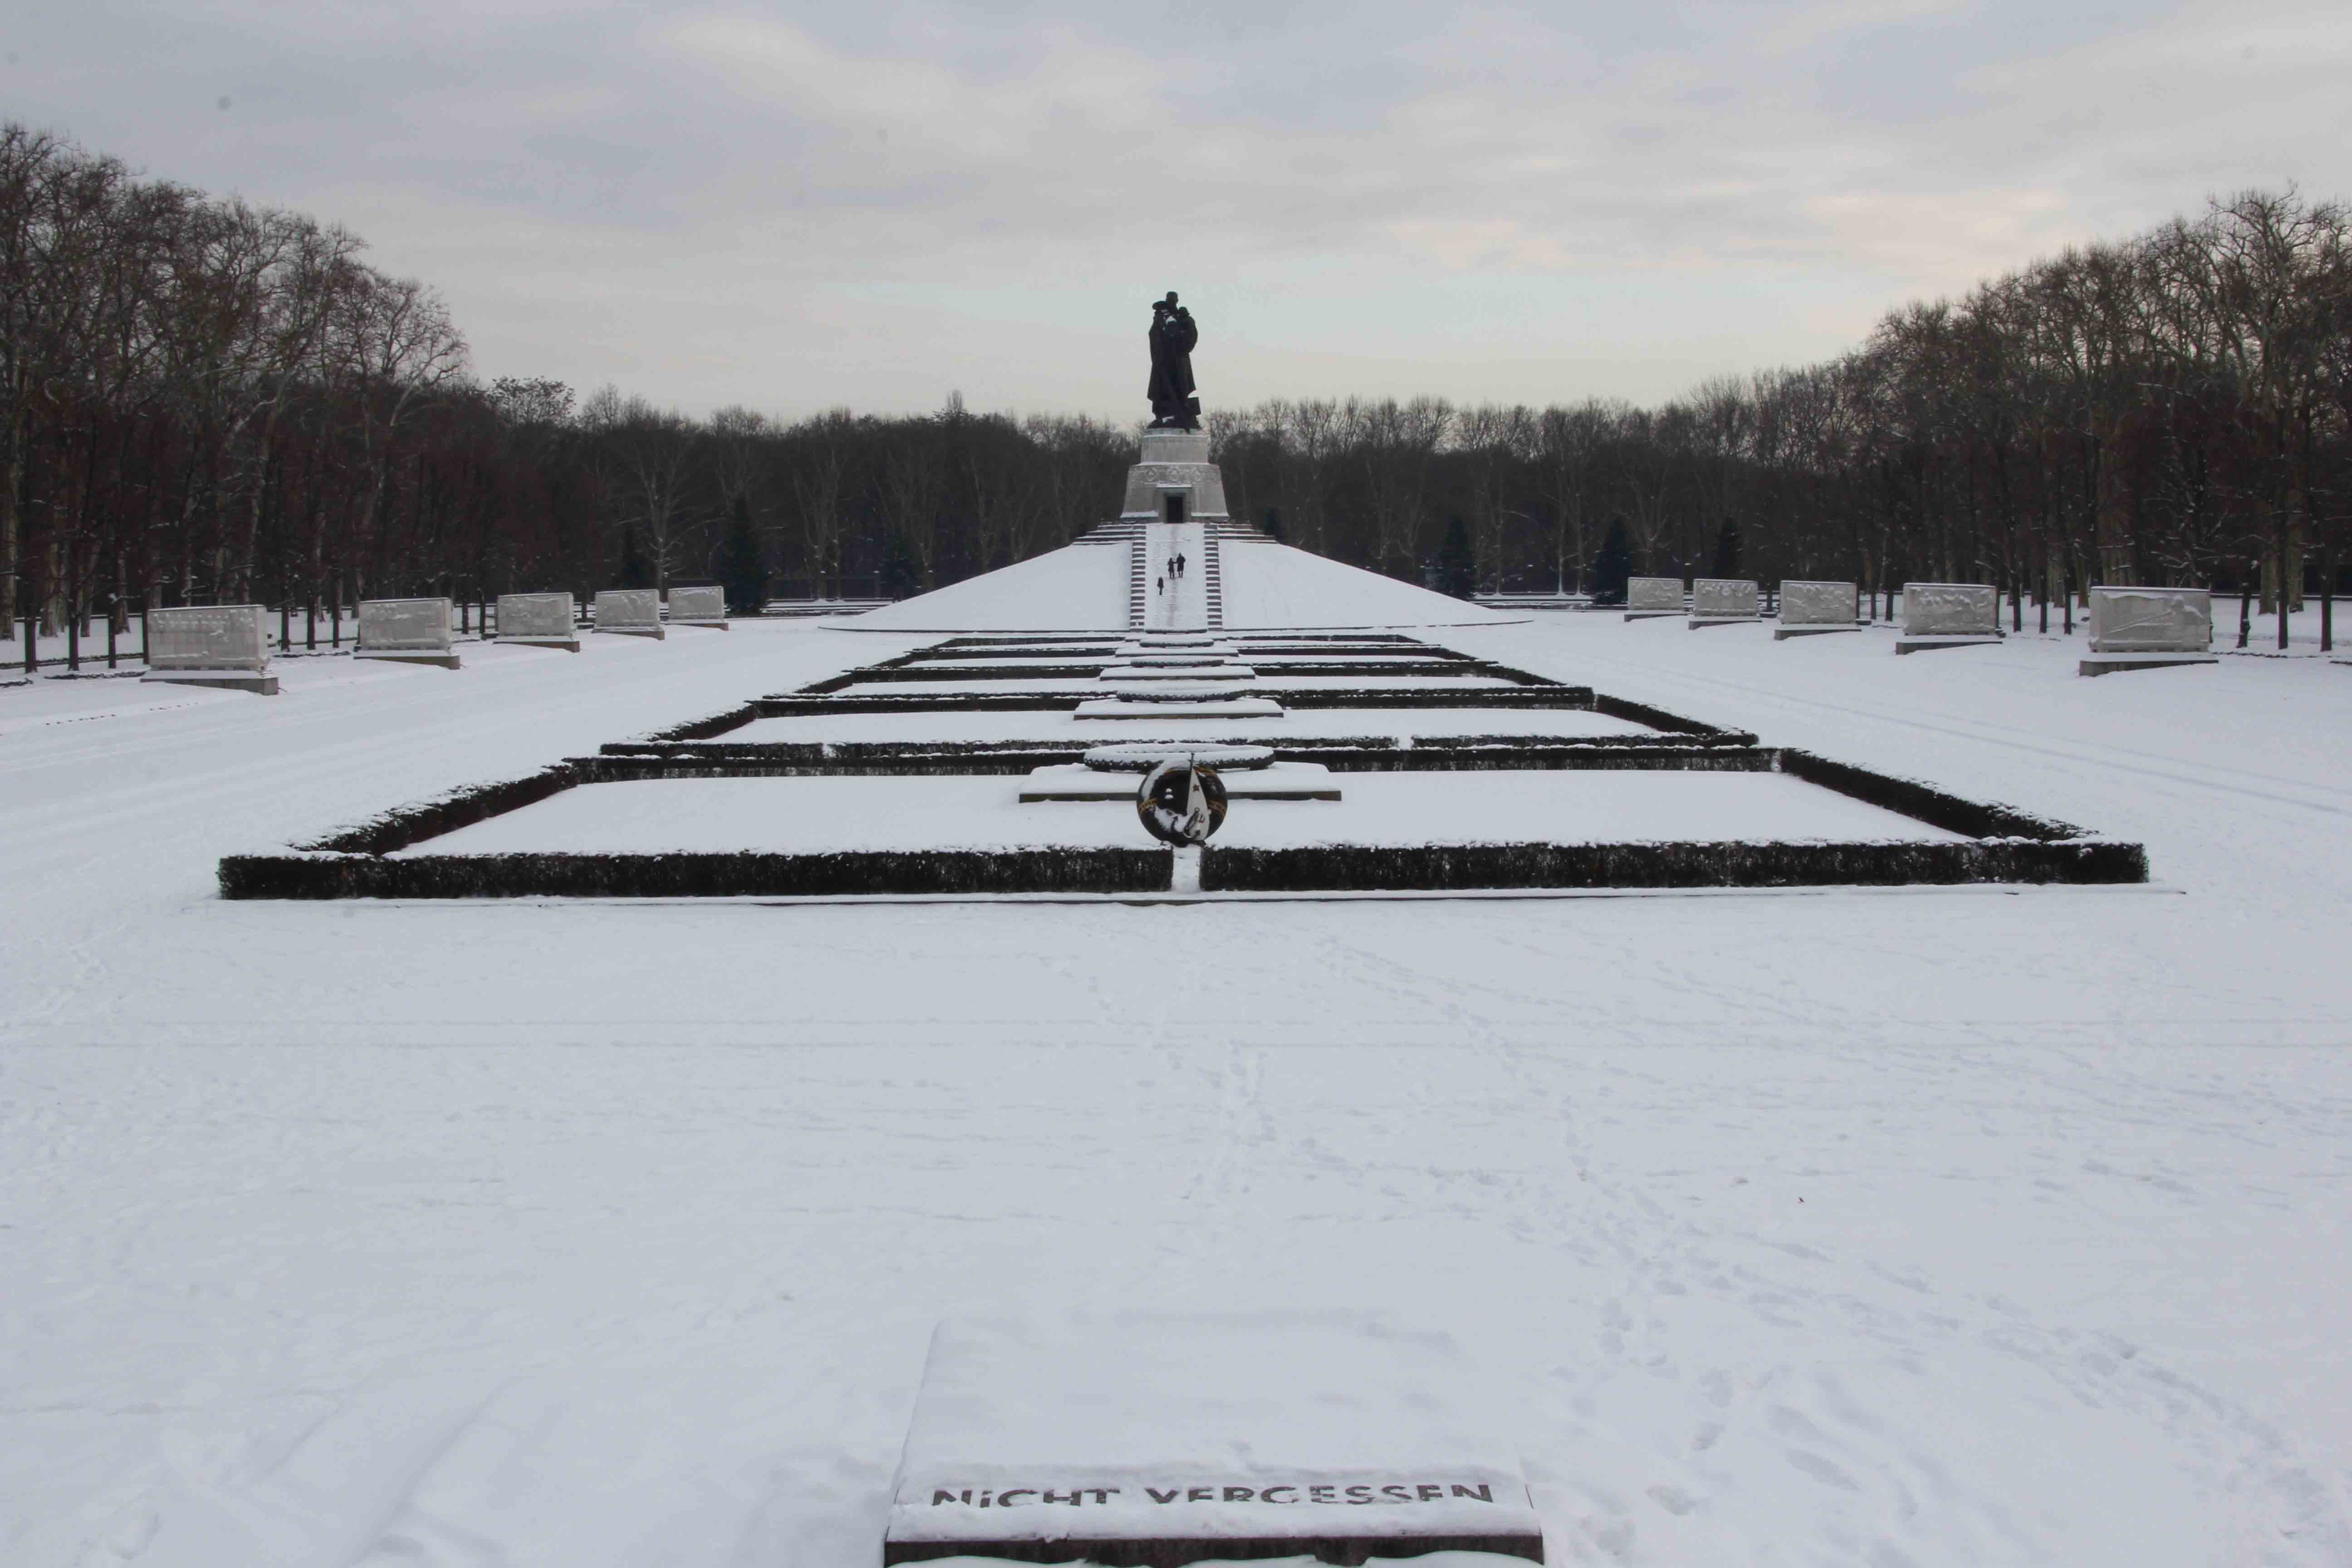 Nicht Vergessen at the Soviet War Memorial in Treptower Park in Berlin